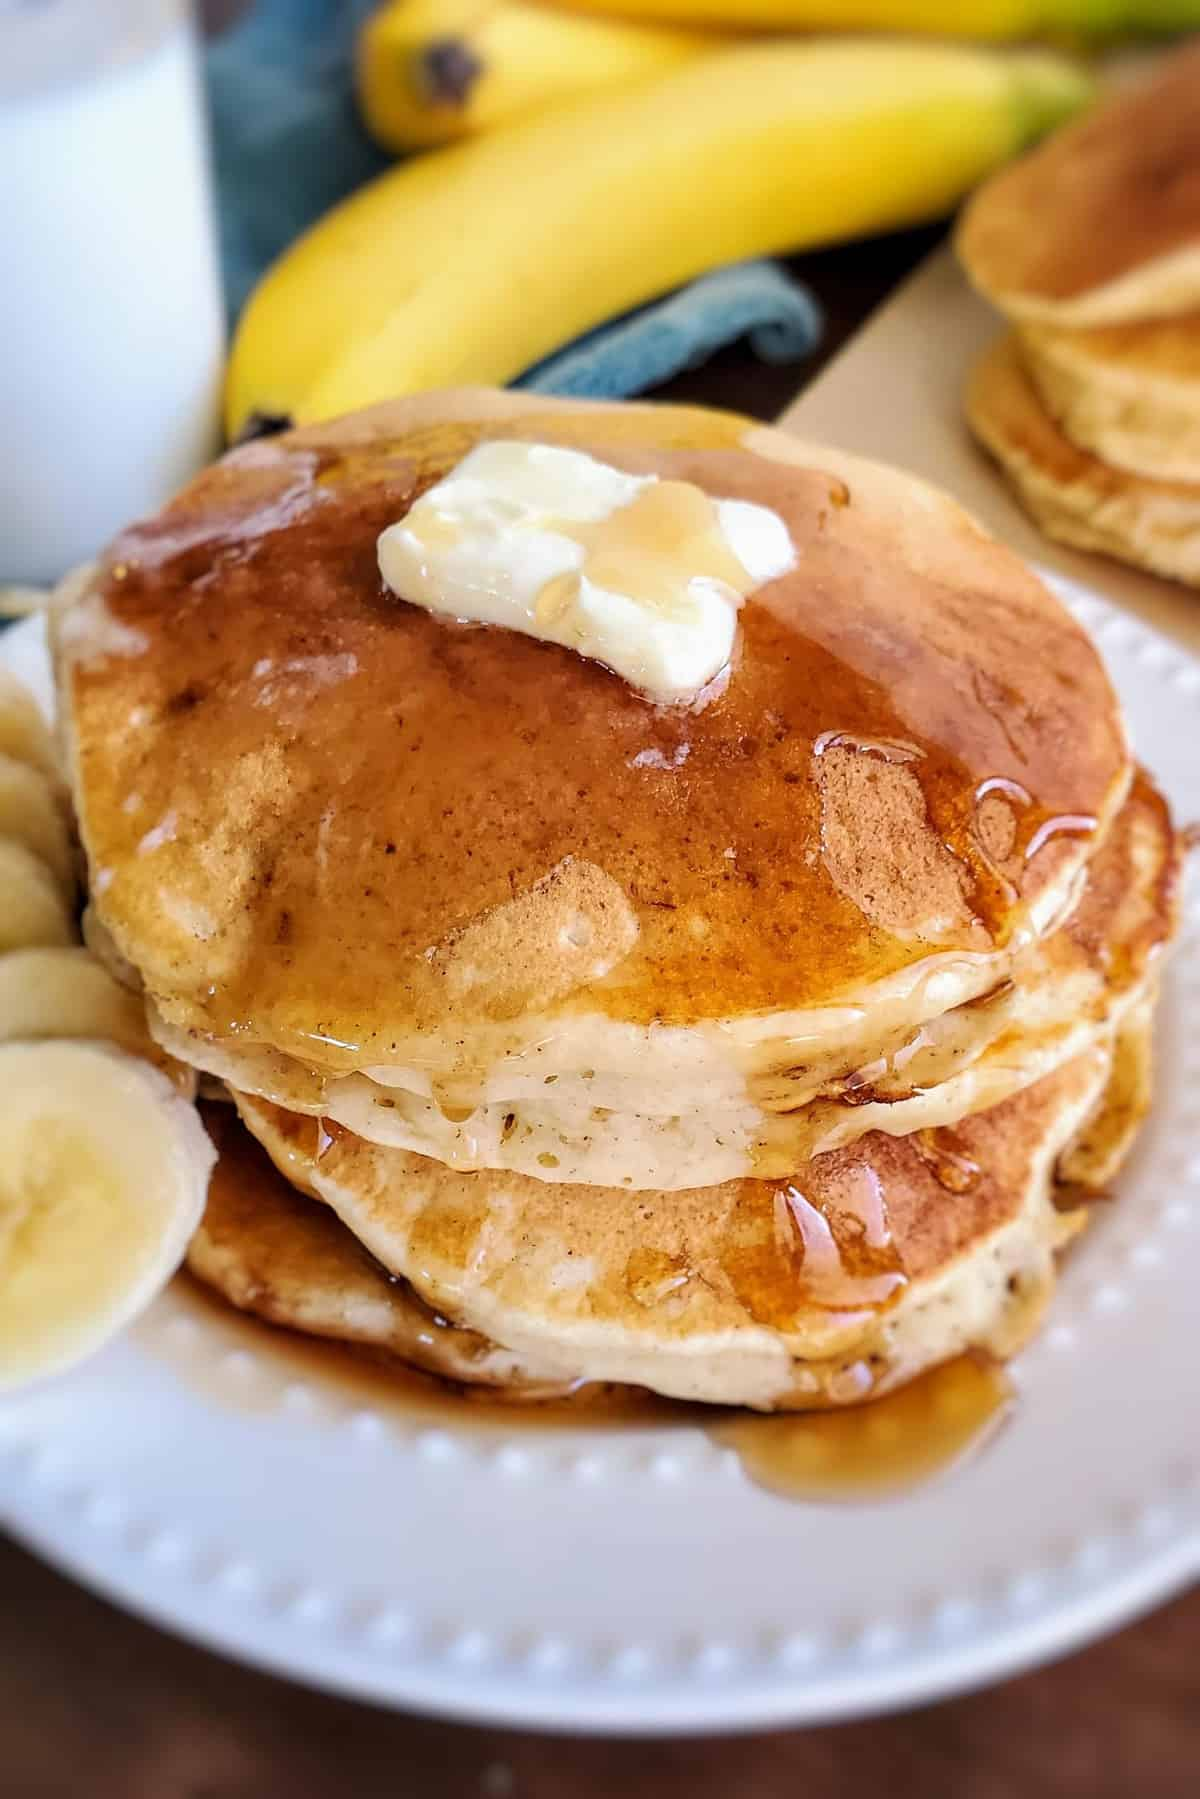 Pancakes with a pat of butter on top, dripping with syrup.